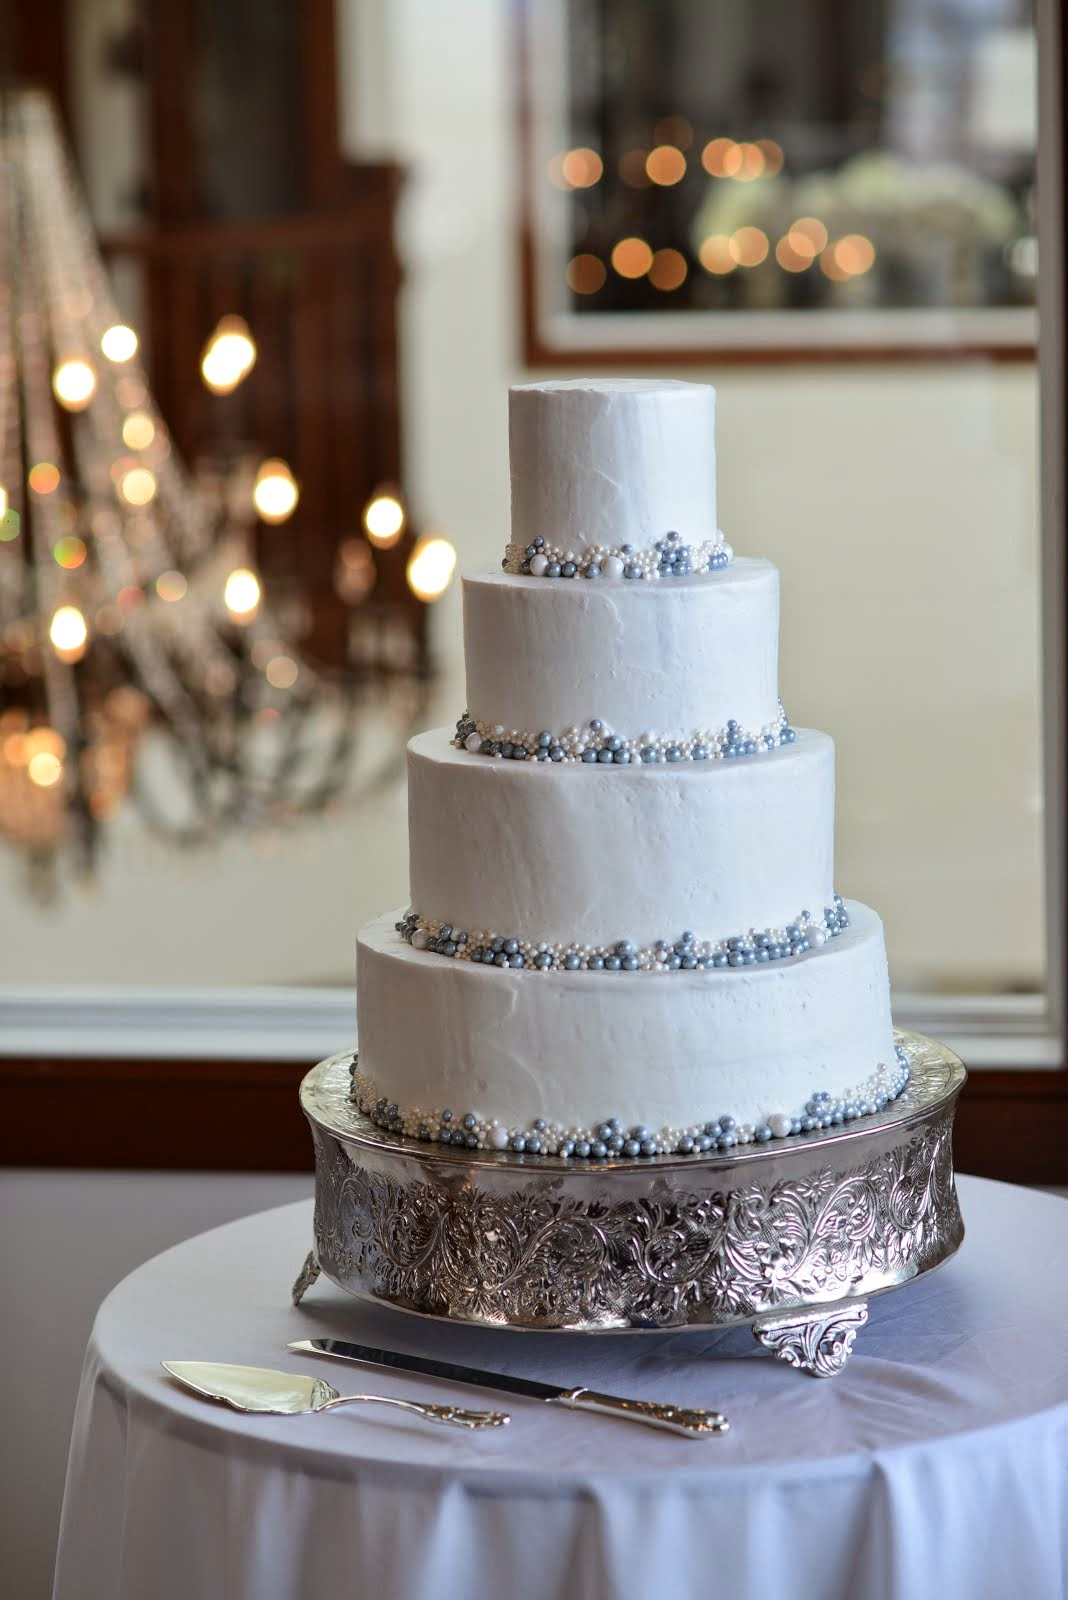 4-tier round buttercream with edible pearls